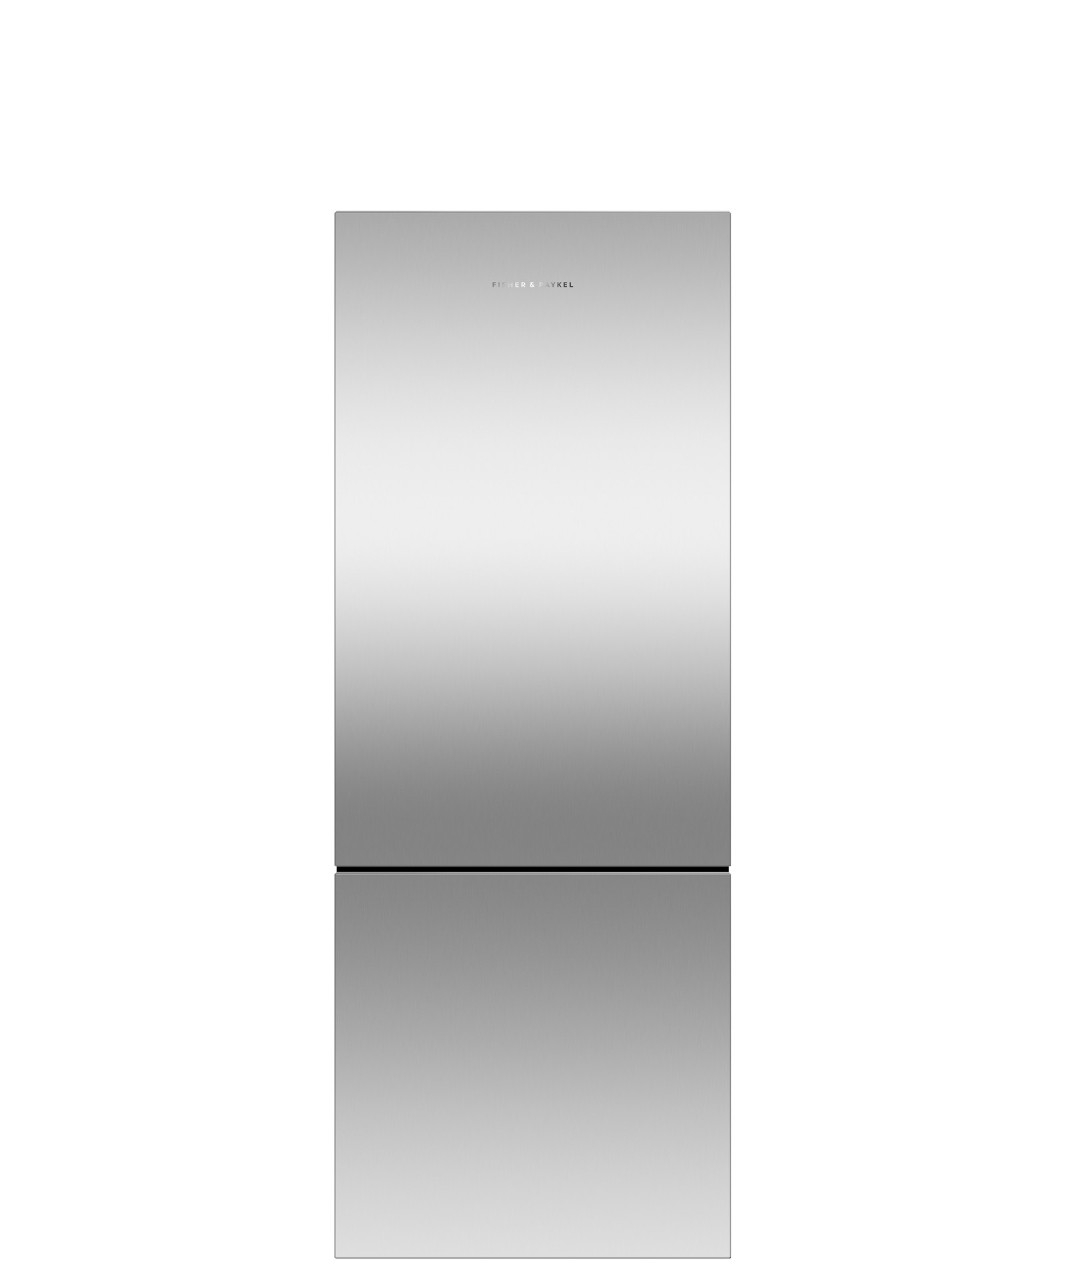 Fisher and Paykel Counter Depth Refrigerator 13.4 cu ft, Ice